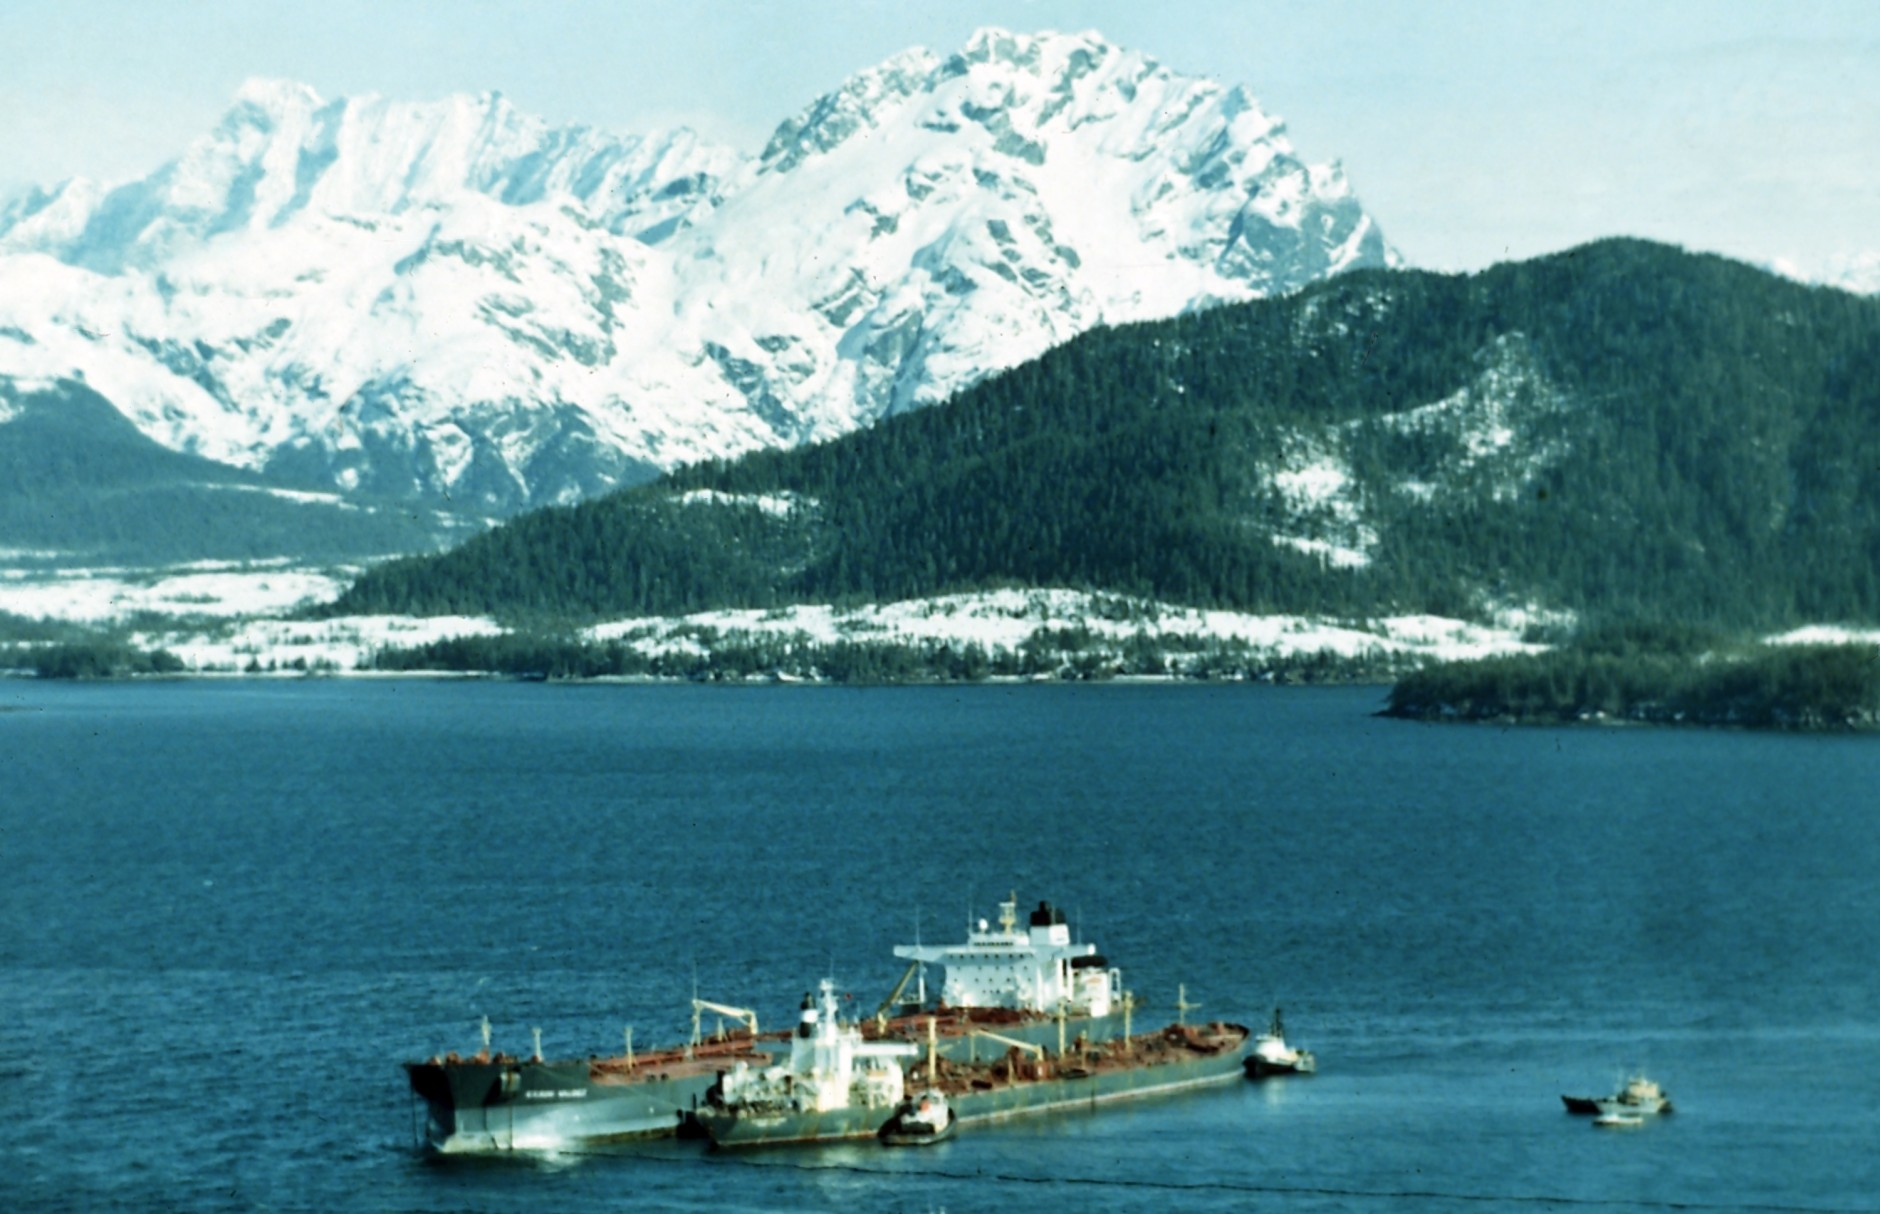 Exxon Valdez oil tanker along side The Exxon Baton Rouge in Prince William, Alaska after it ran aground on 26 March, 1989 creating an oil spill. (AP Photo)